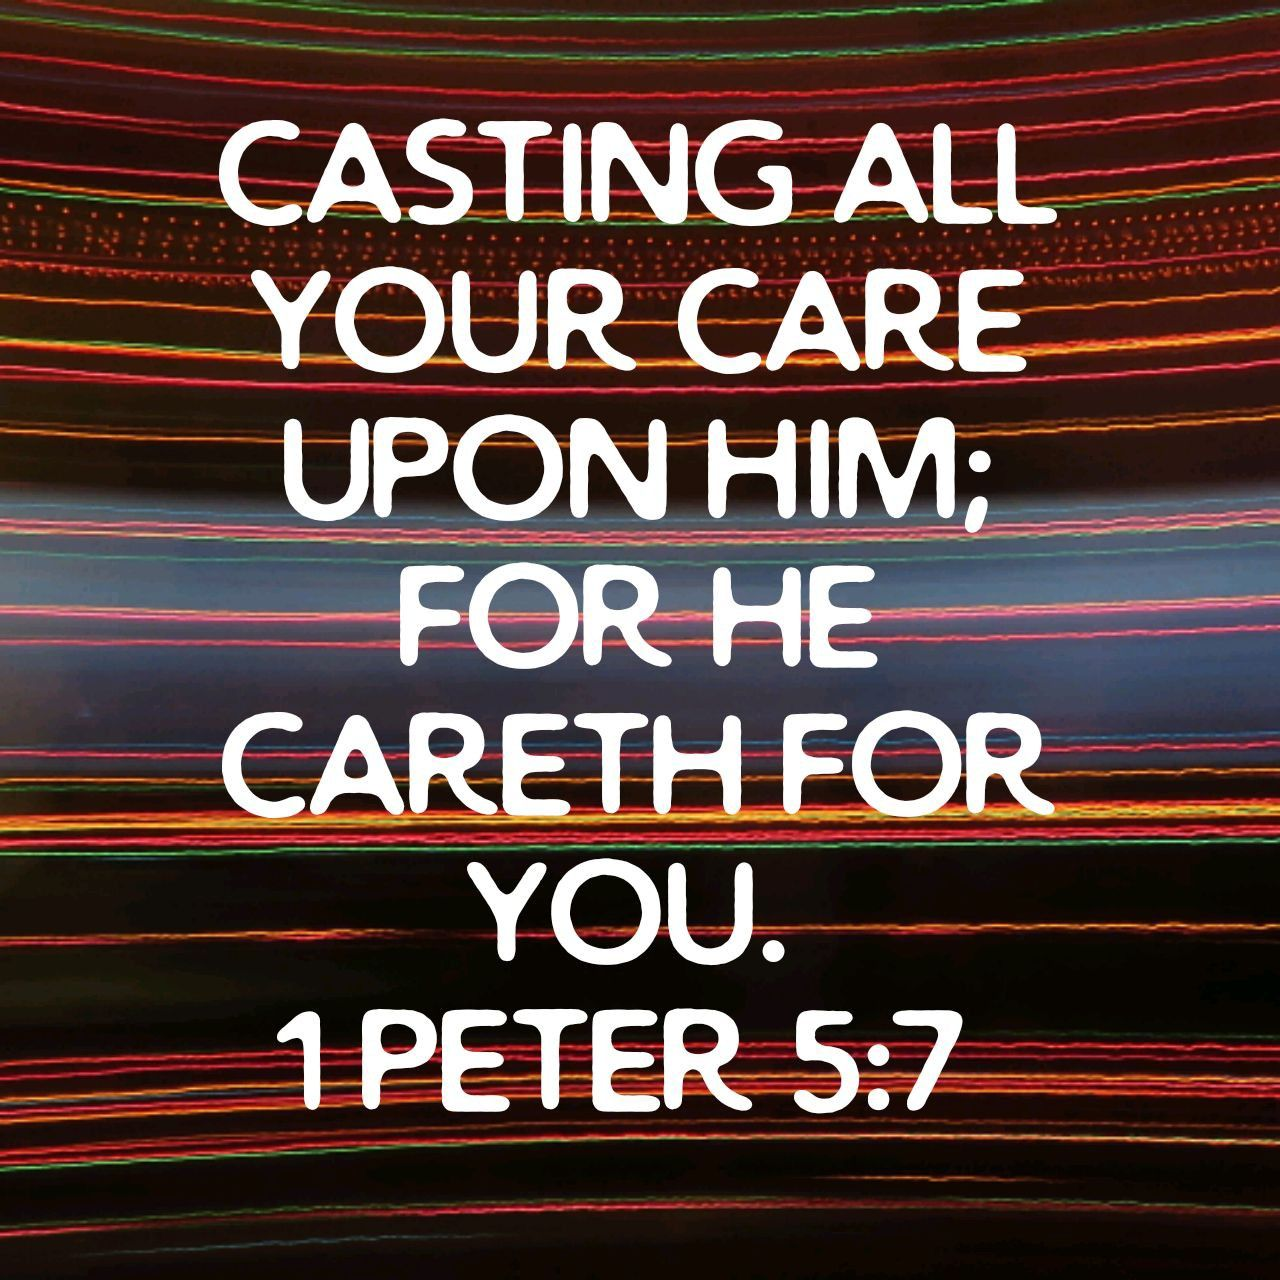 Casting all your care upon him; for he careth for you. 1 Peter 5:7 KJV | Cast all your cares, It cast, Praise